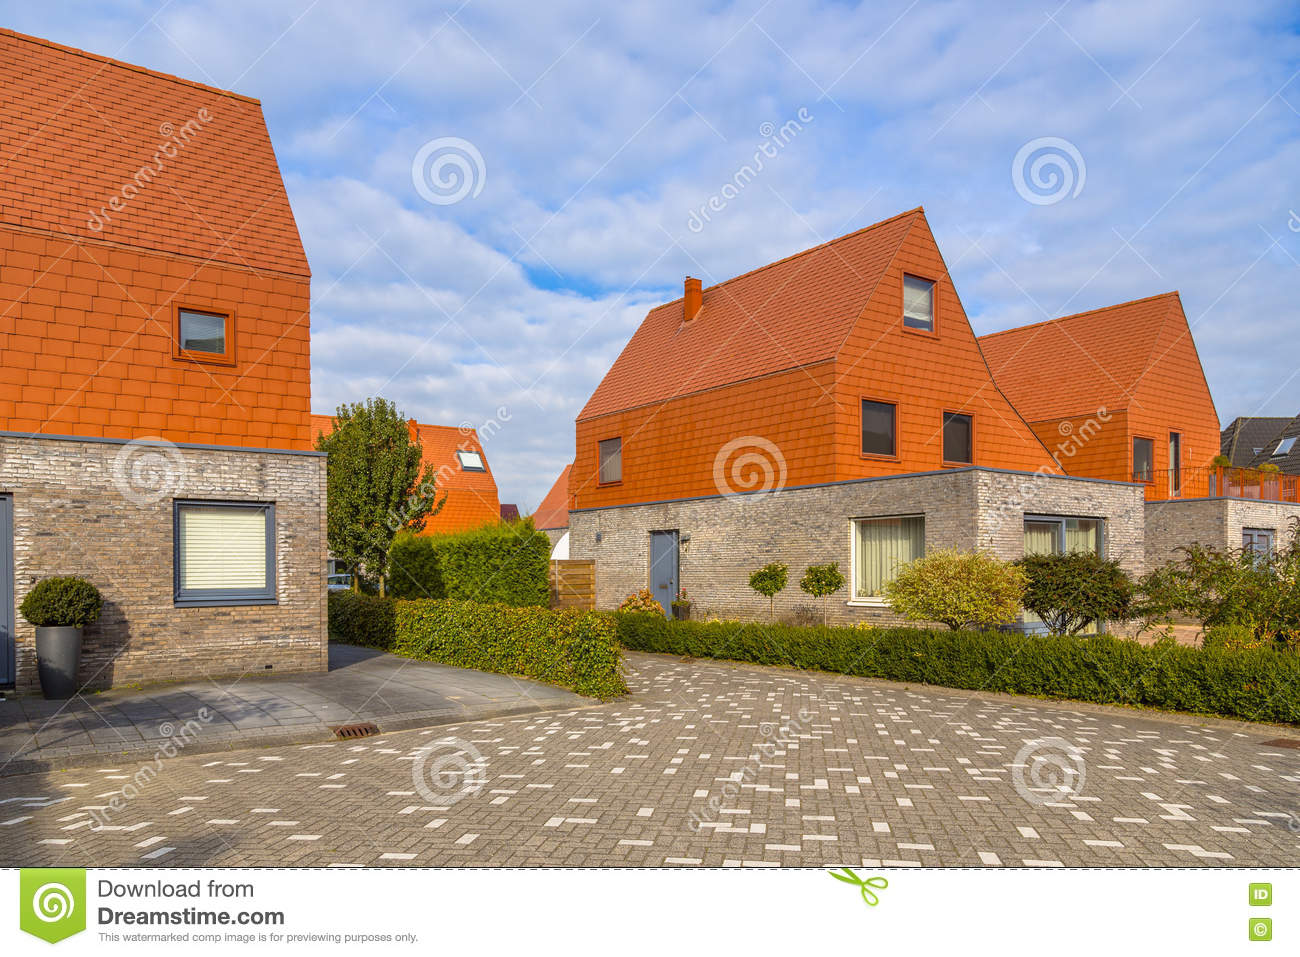 Modern Houses With Striking Red Slate Roof Tiles Stock